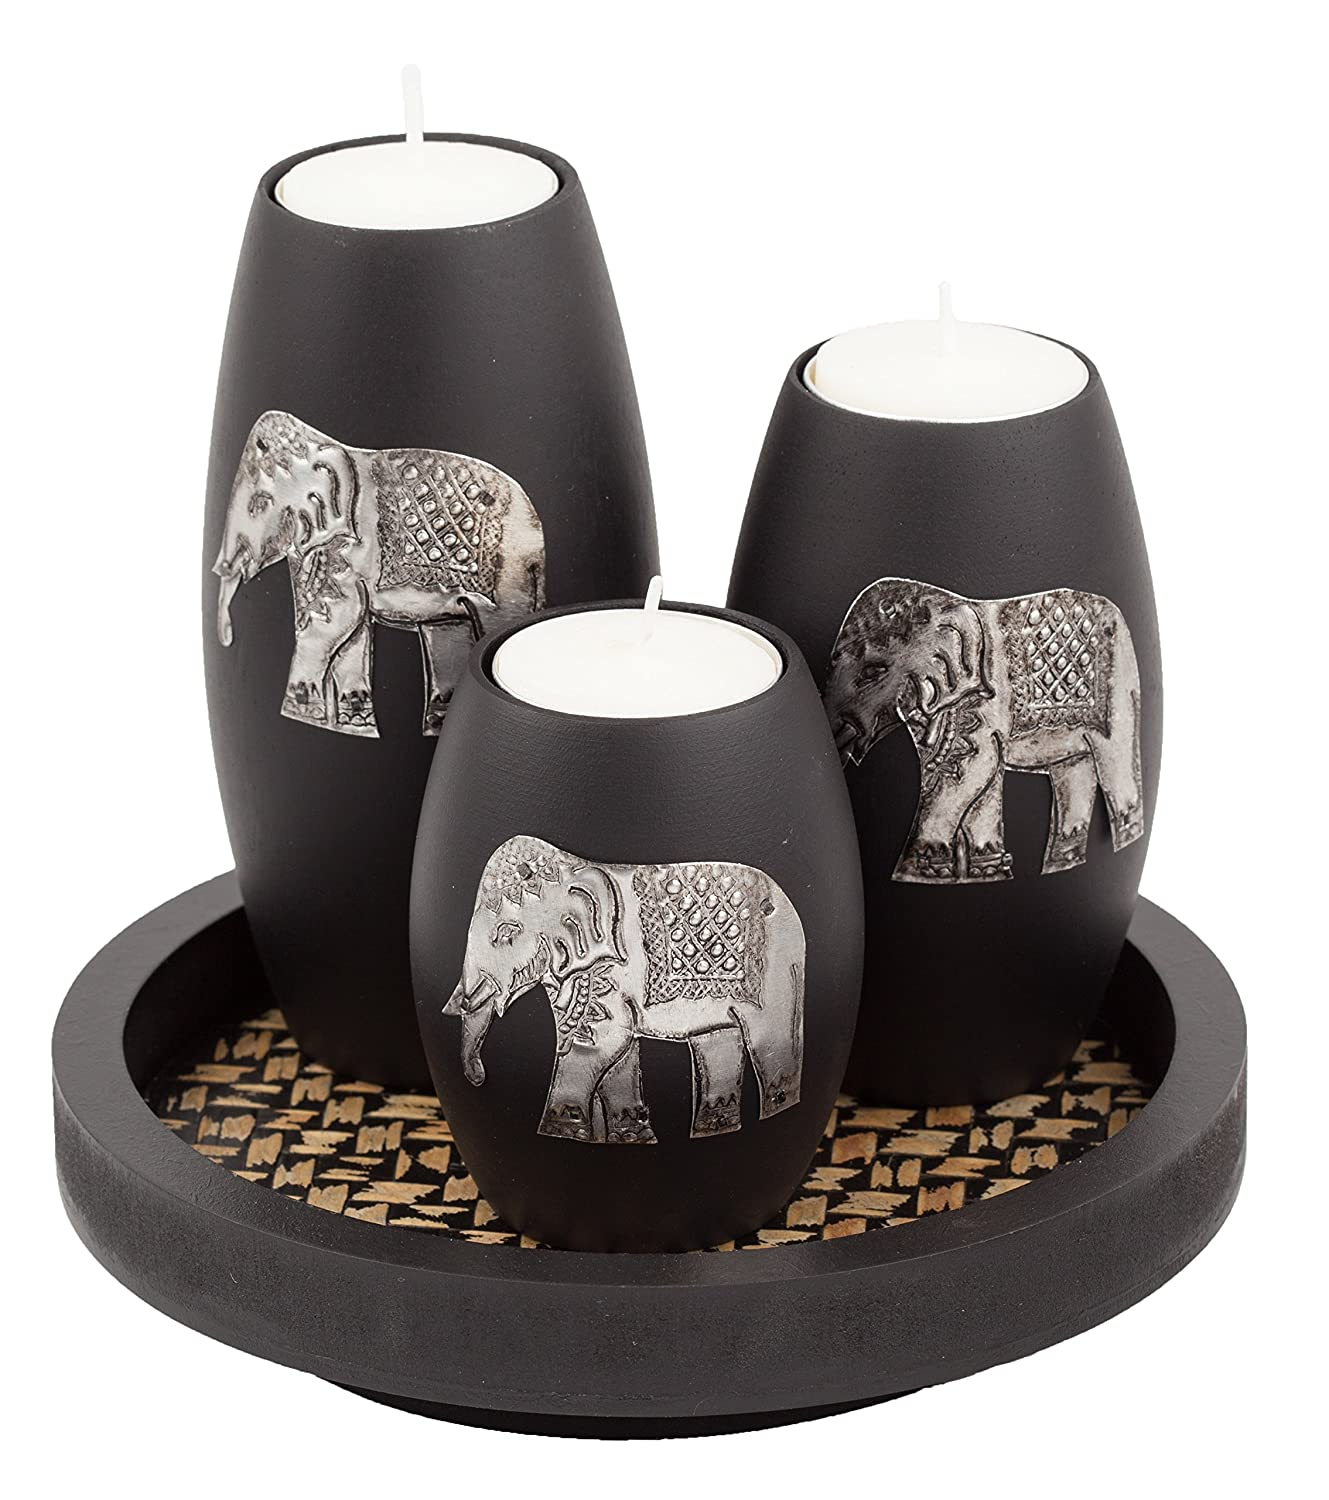 Decorative Candle Holders with Inlaid Aluminium Antique Elephant Ideal for Modern /& Rustic Settings Easy/_company Matte Wood Finish IYARA CRAFT/'s 3 Wooden Candle Holders with Candle Tray Intricate Details